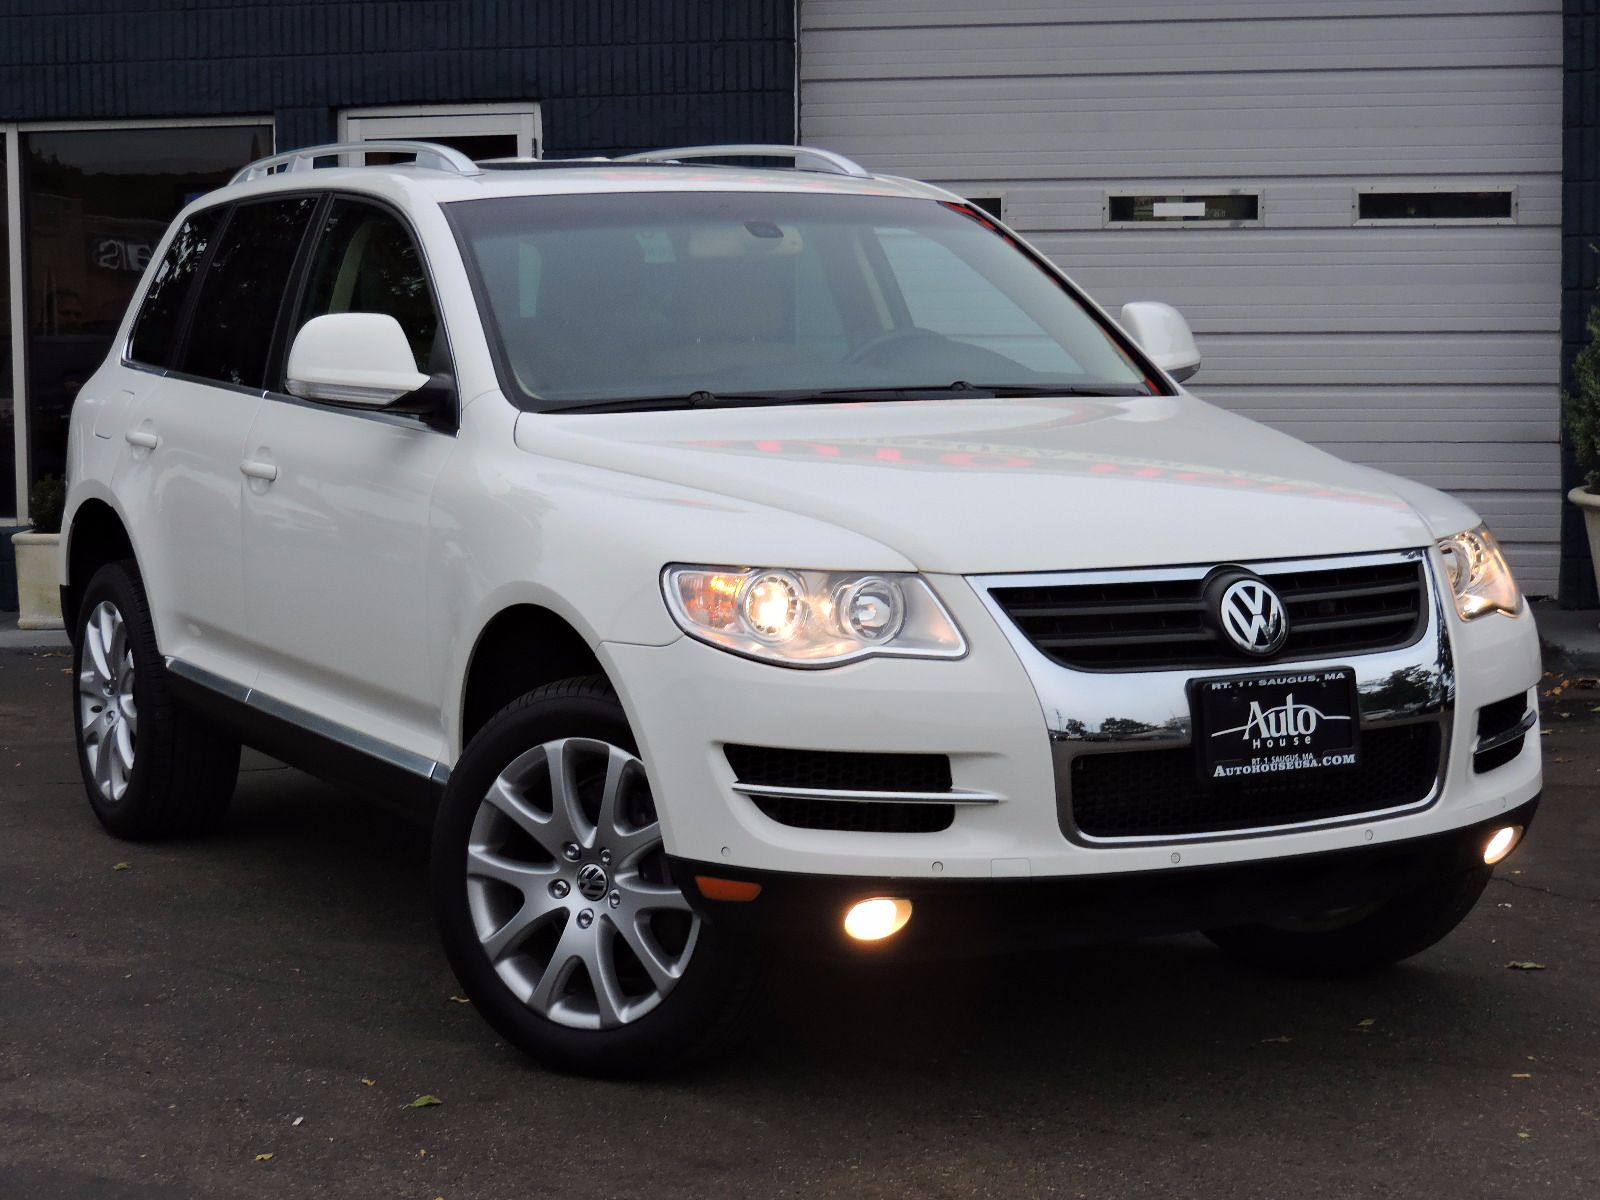 used 2010 volkswagen touareg vr6 vr6 at auto house usa saugus. Black Bedroom Furniture Sets. Home Design Ideas